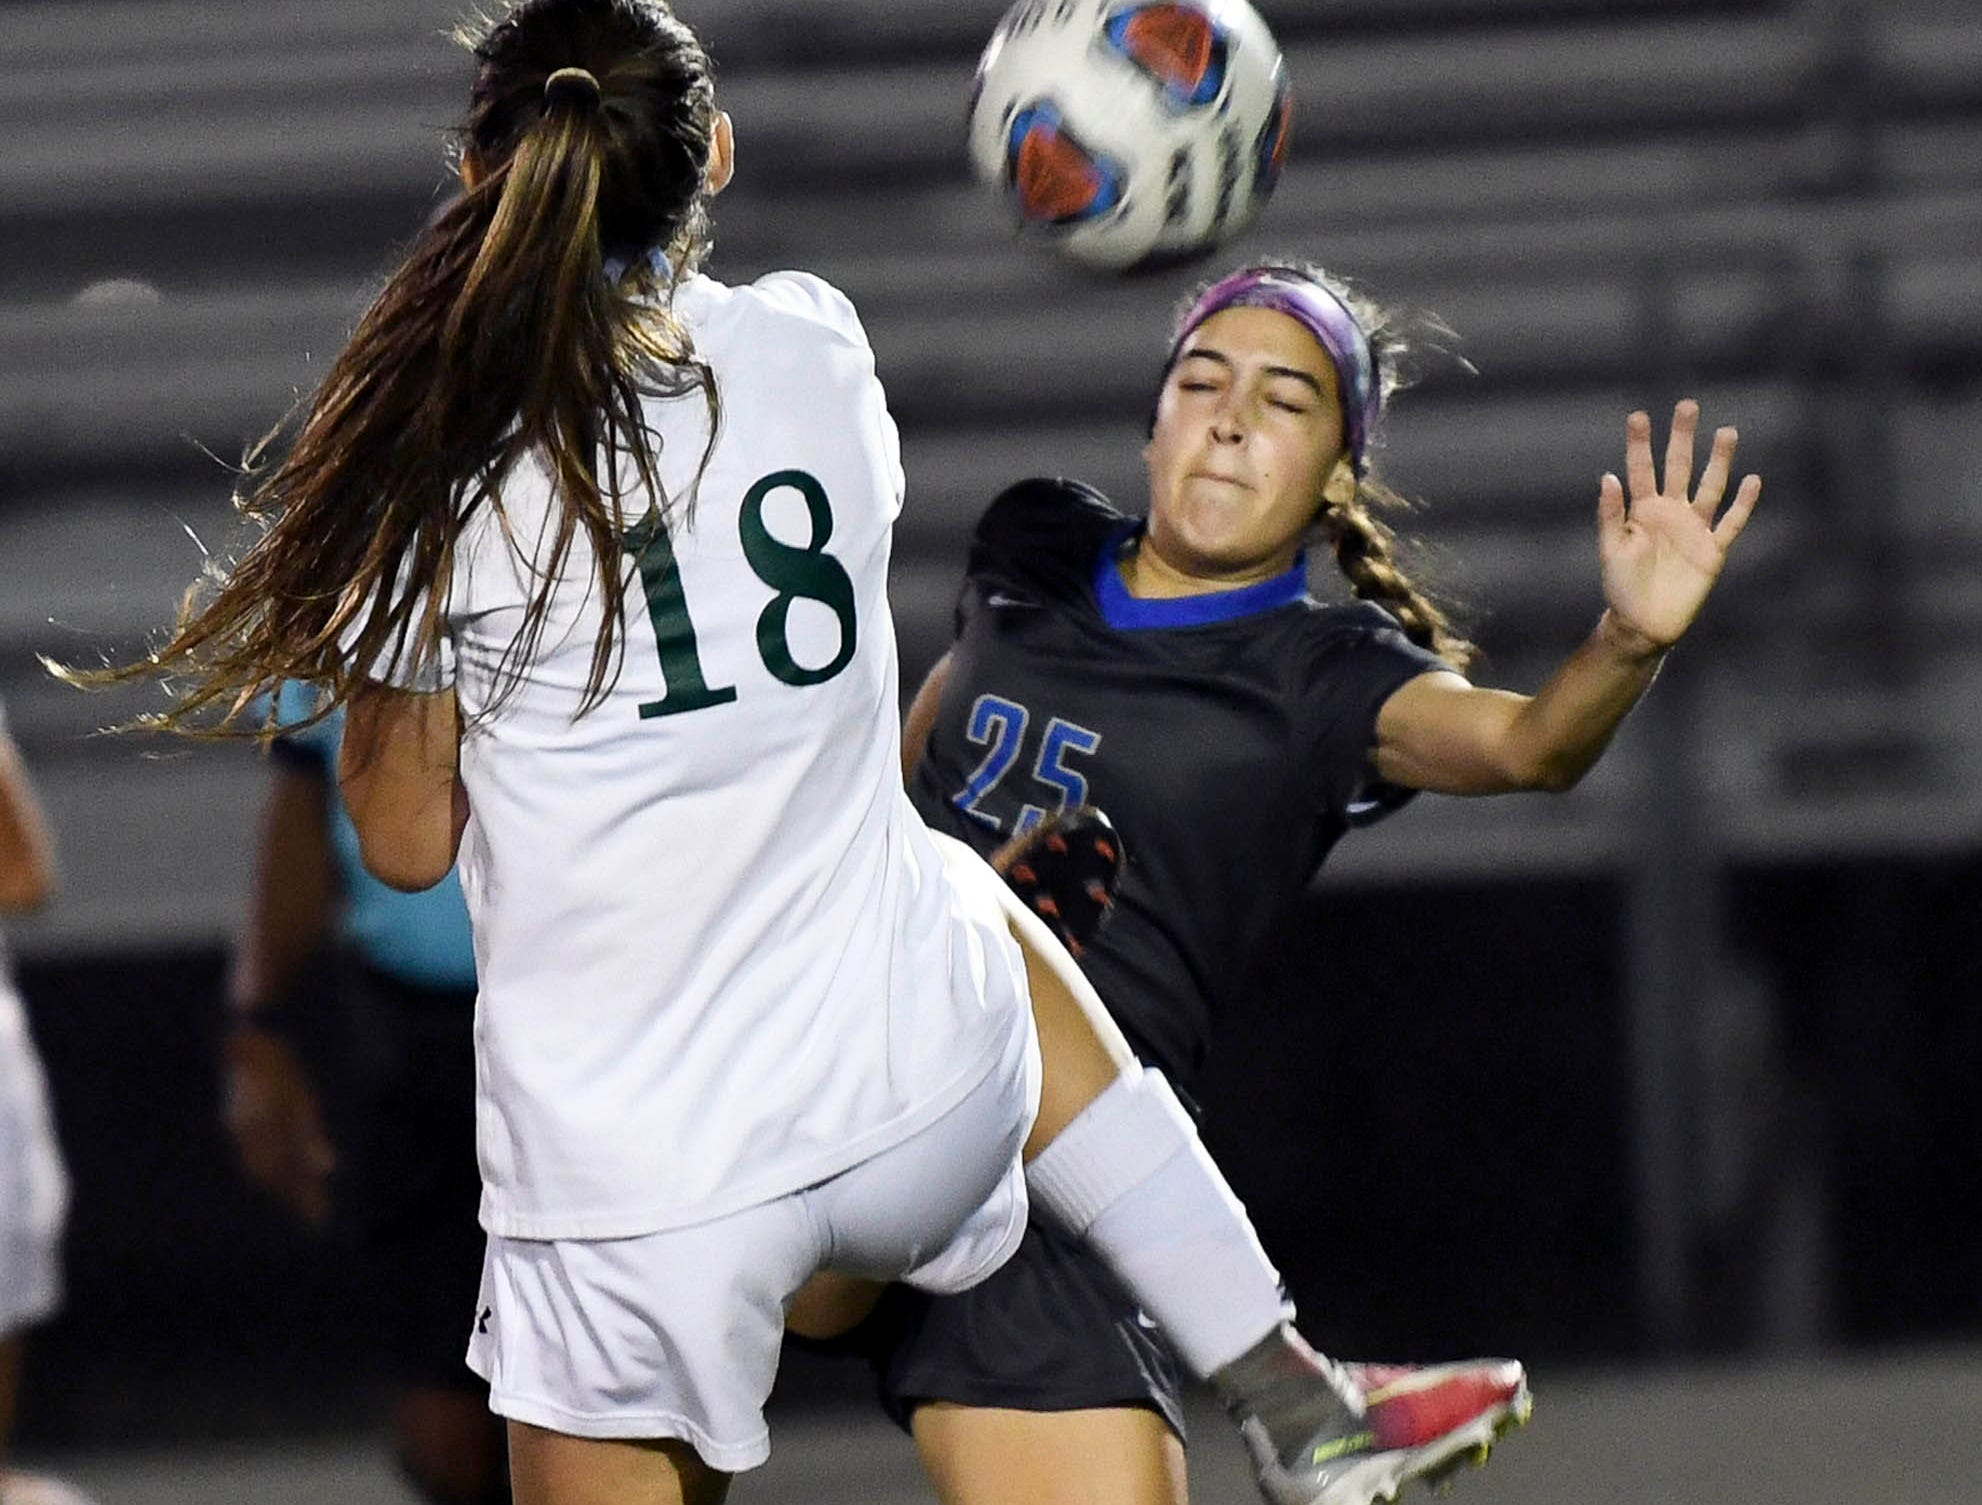 Melbourne's Jordan Smith (18) and Sabrina Hernandez of Cypress Bay battle for control of the ball during Thursday's game in Melbourne.